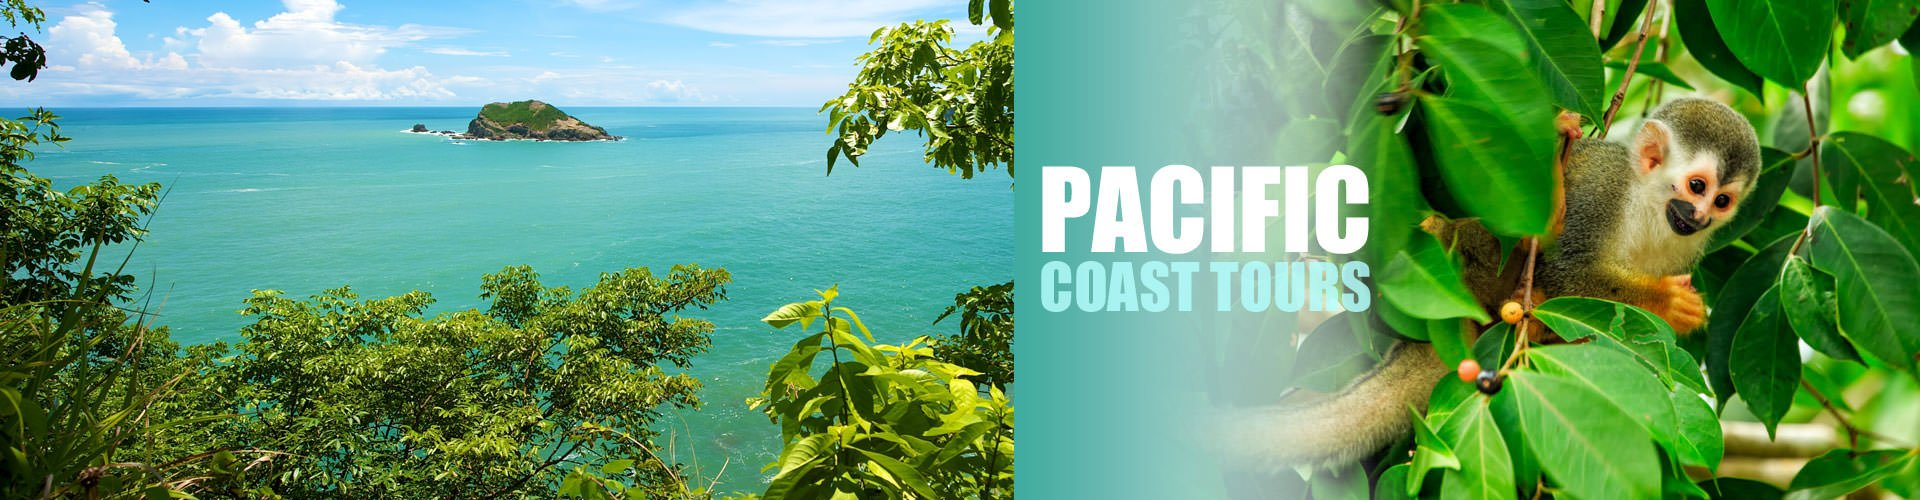 Pacific Coast Tours